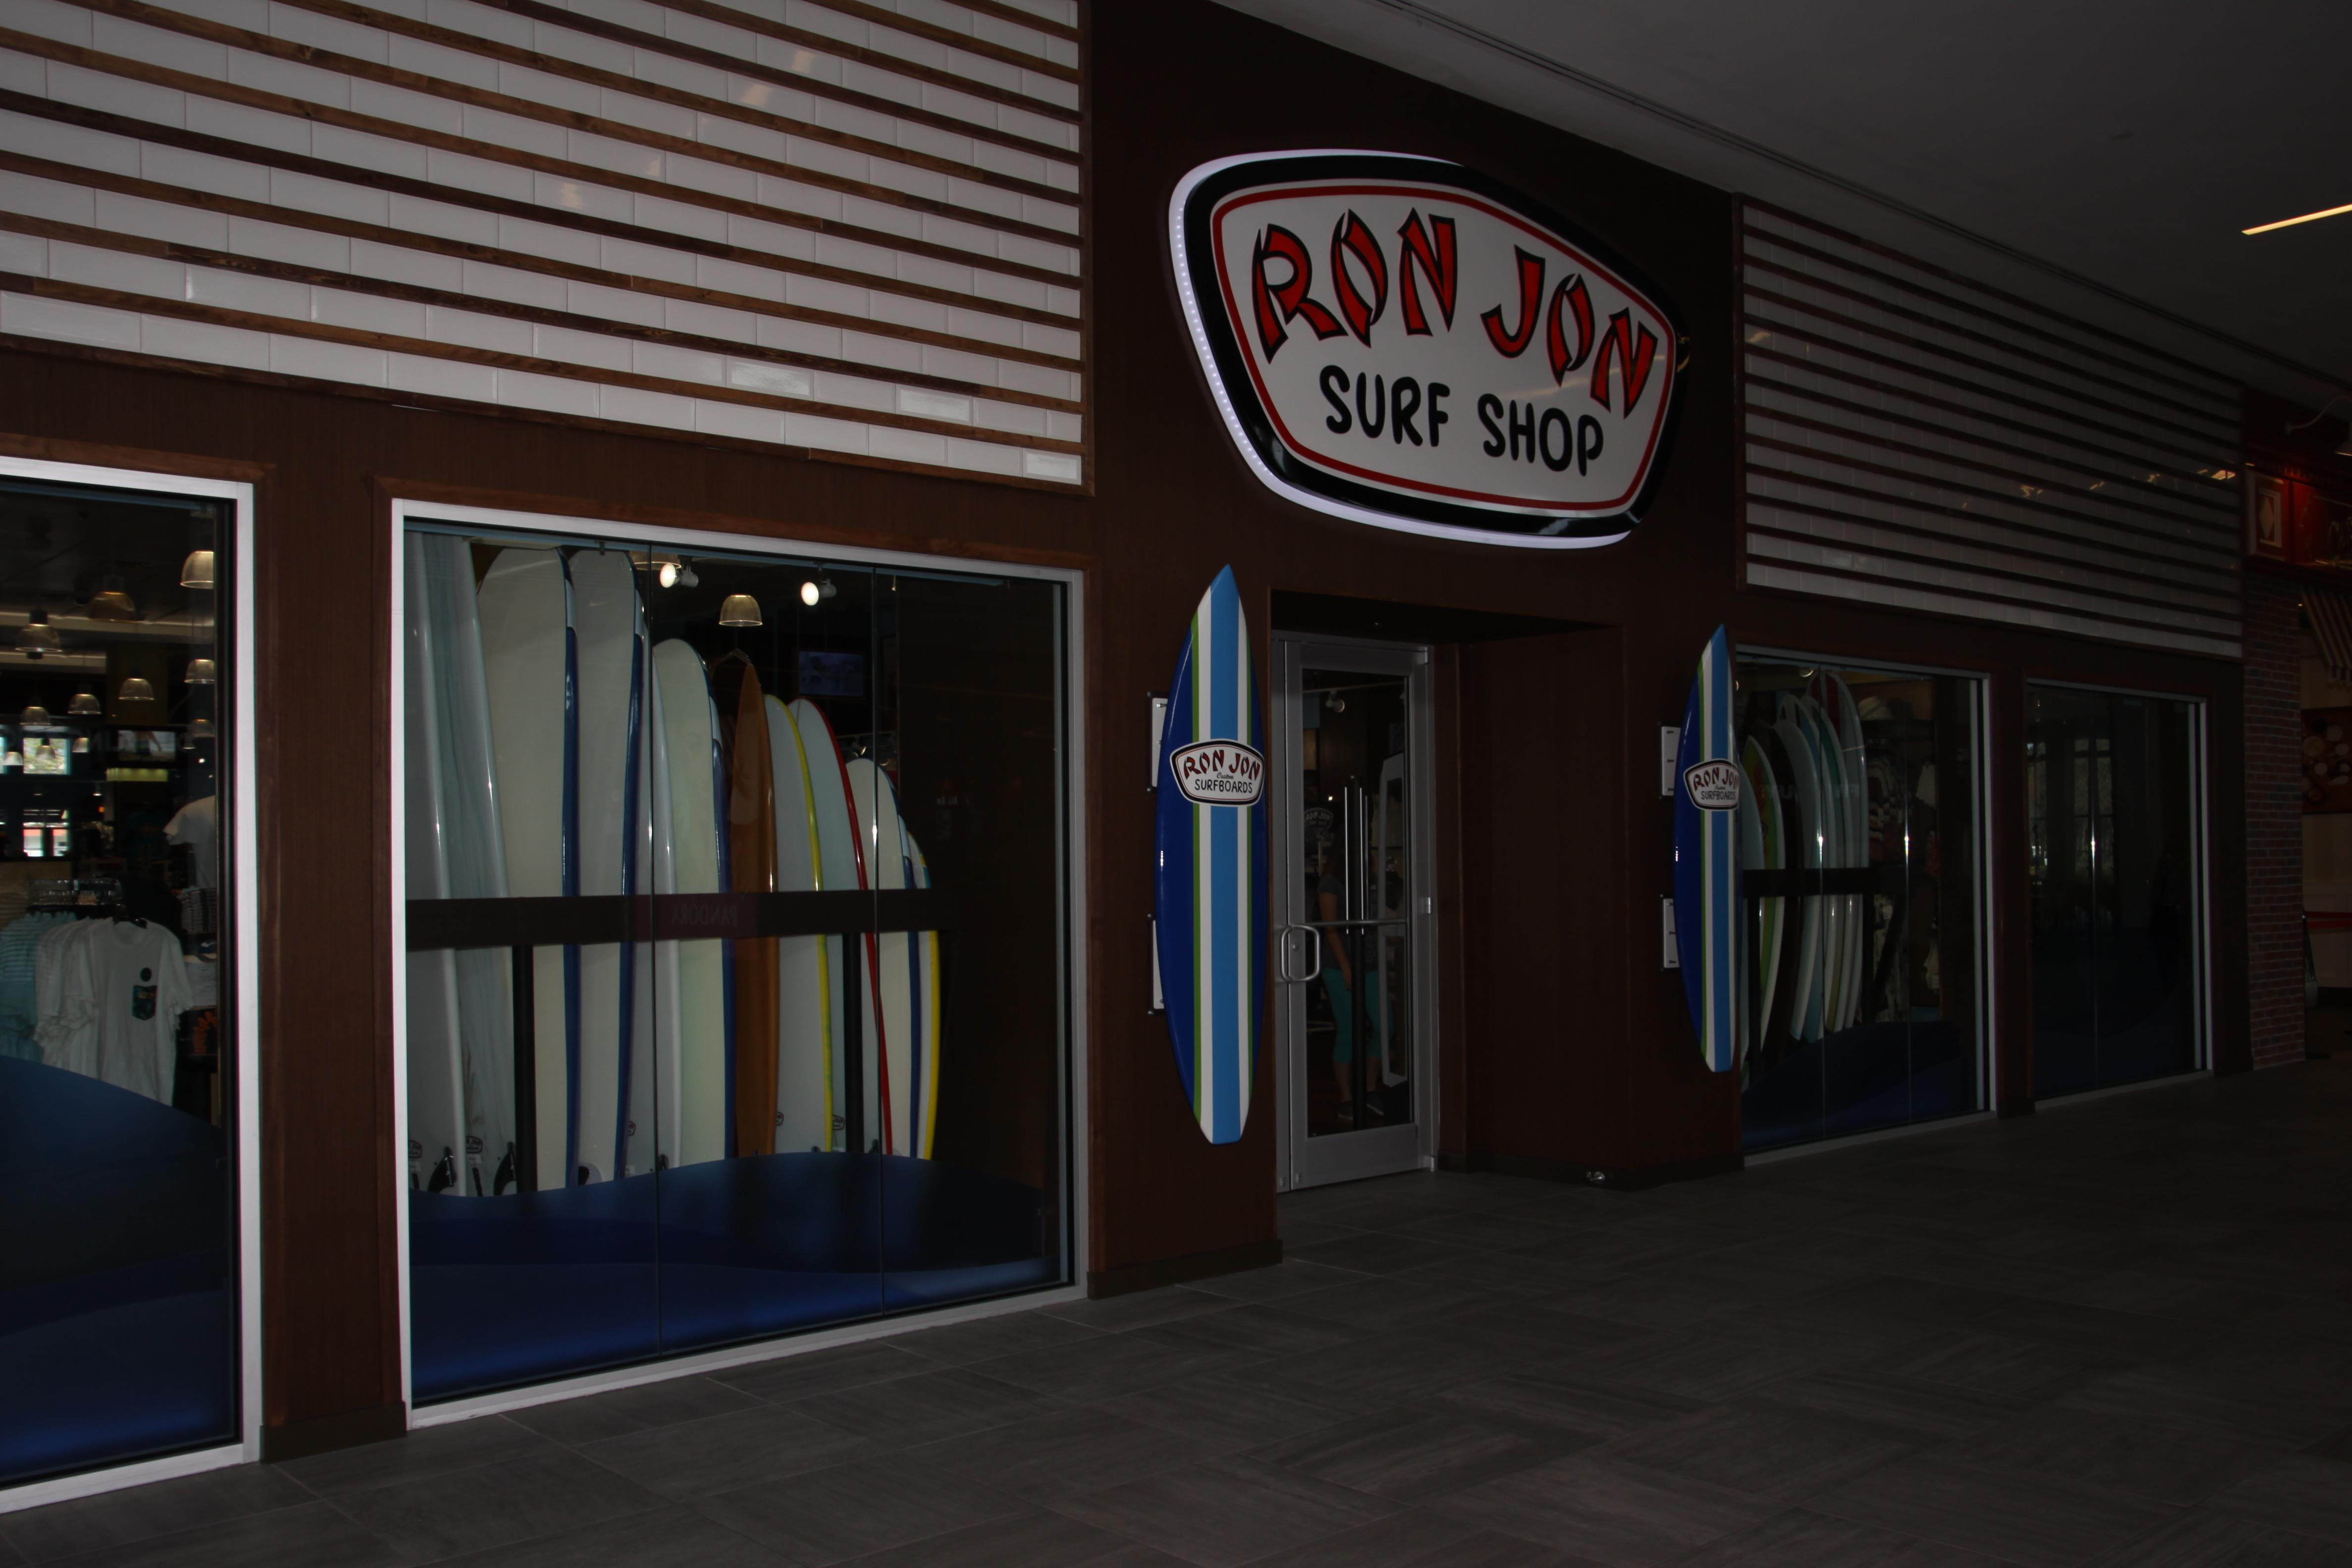 Ron Jon Surf Shop, the World's Most Famous® surf shop brings the beach to you! All the great names and assortments in swimwear, casual clothing, surfboards, skateboards and beach accessories you've come to expect from Ron Jon can be found at Ron Jon Surf Shop at The Florida Mall.